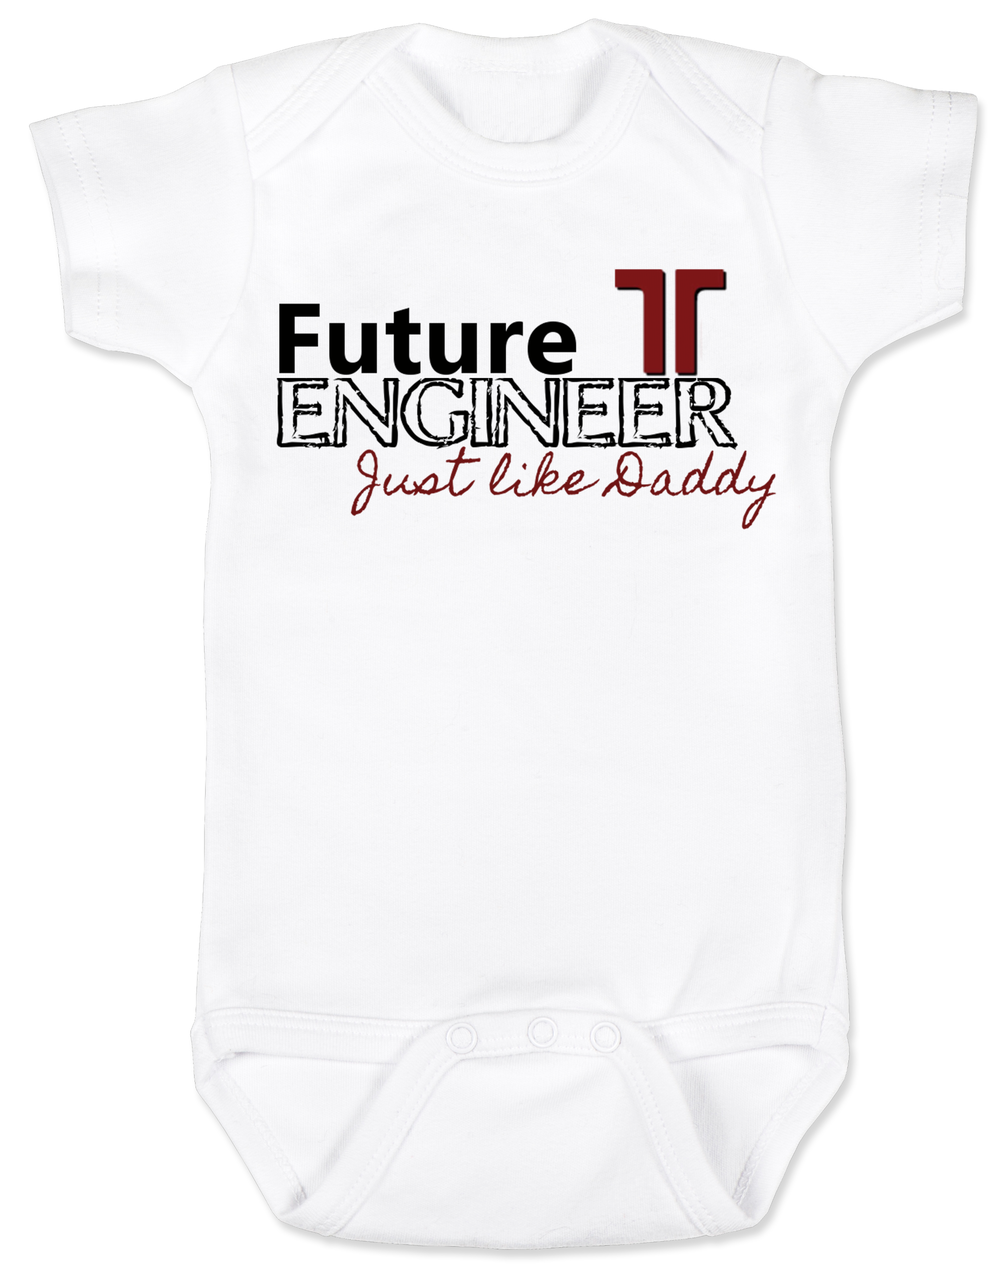 7ebf77a7b056 Future Engineer Personalized Baby Bodysuit